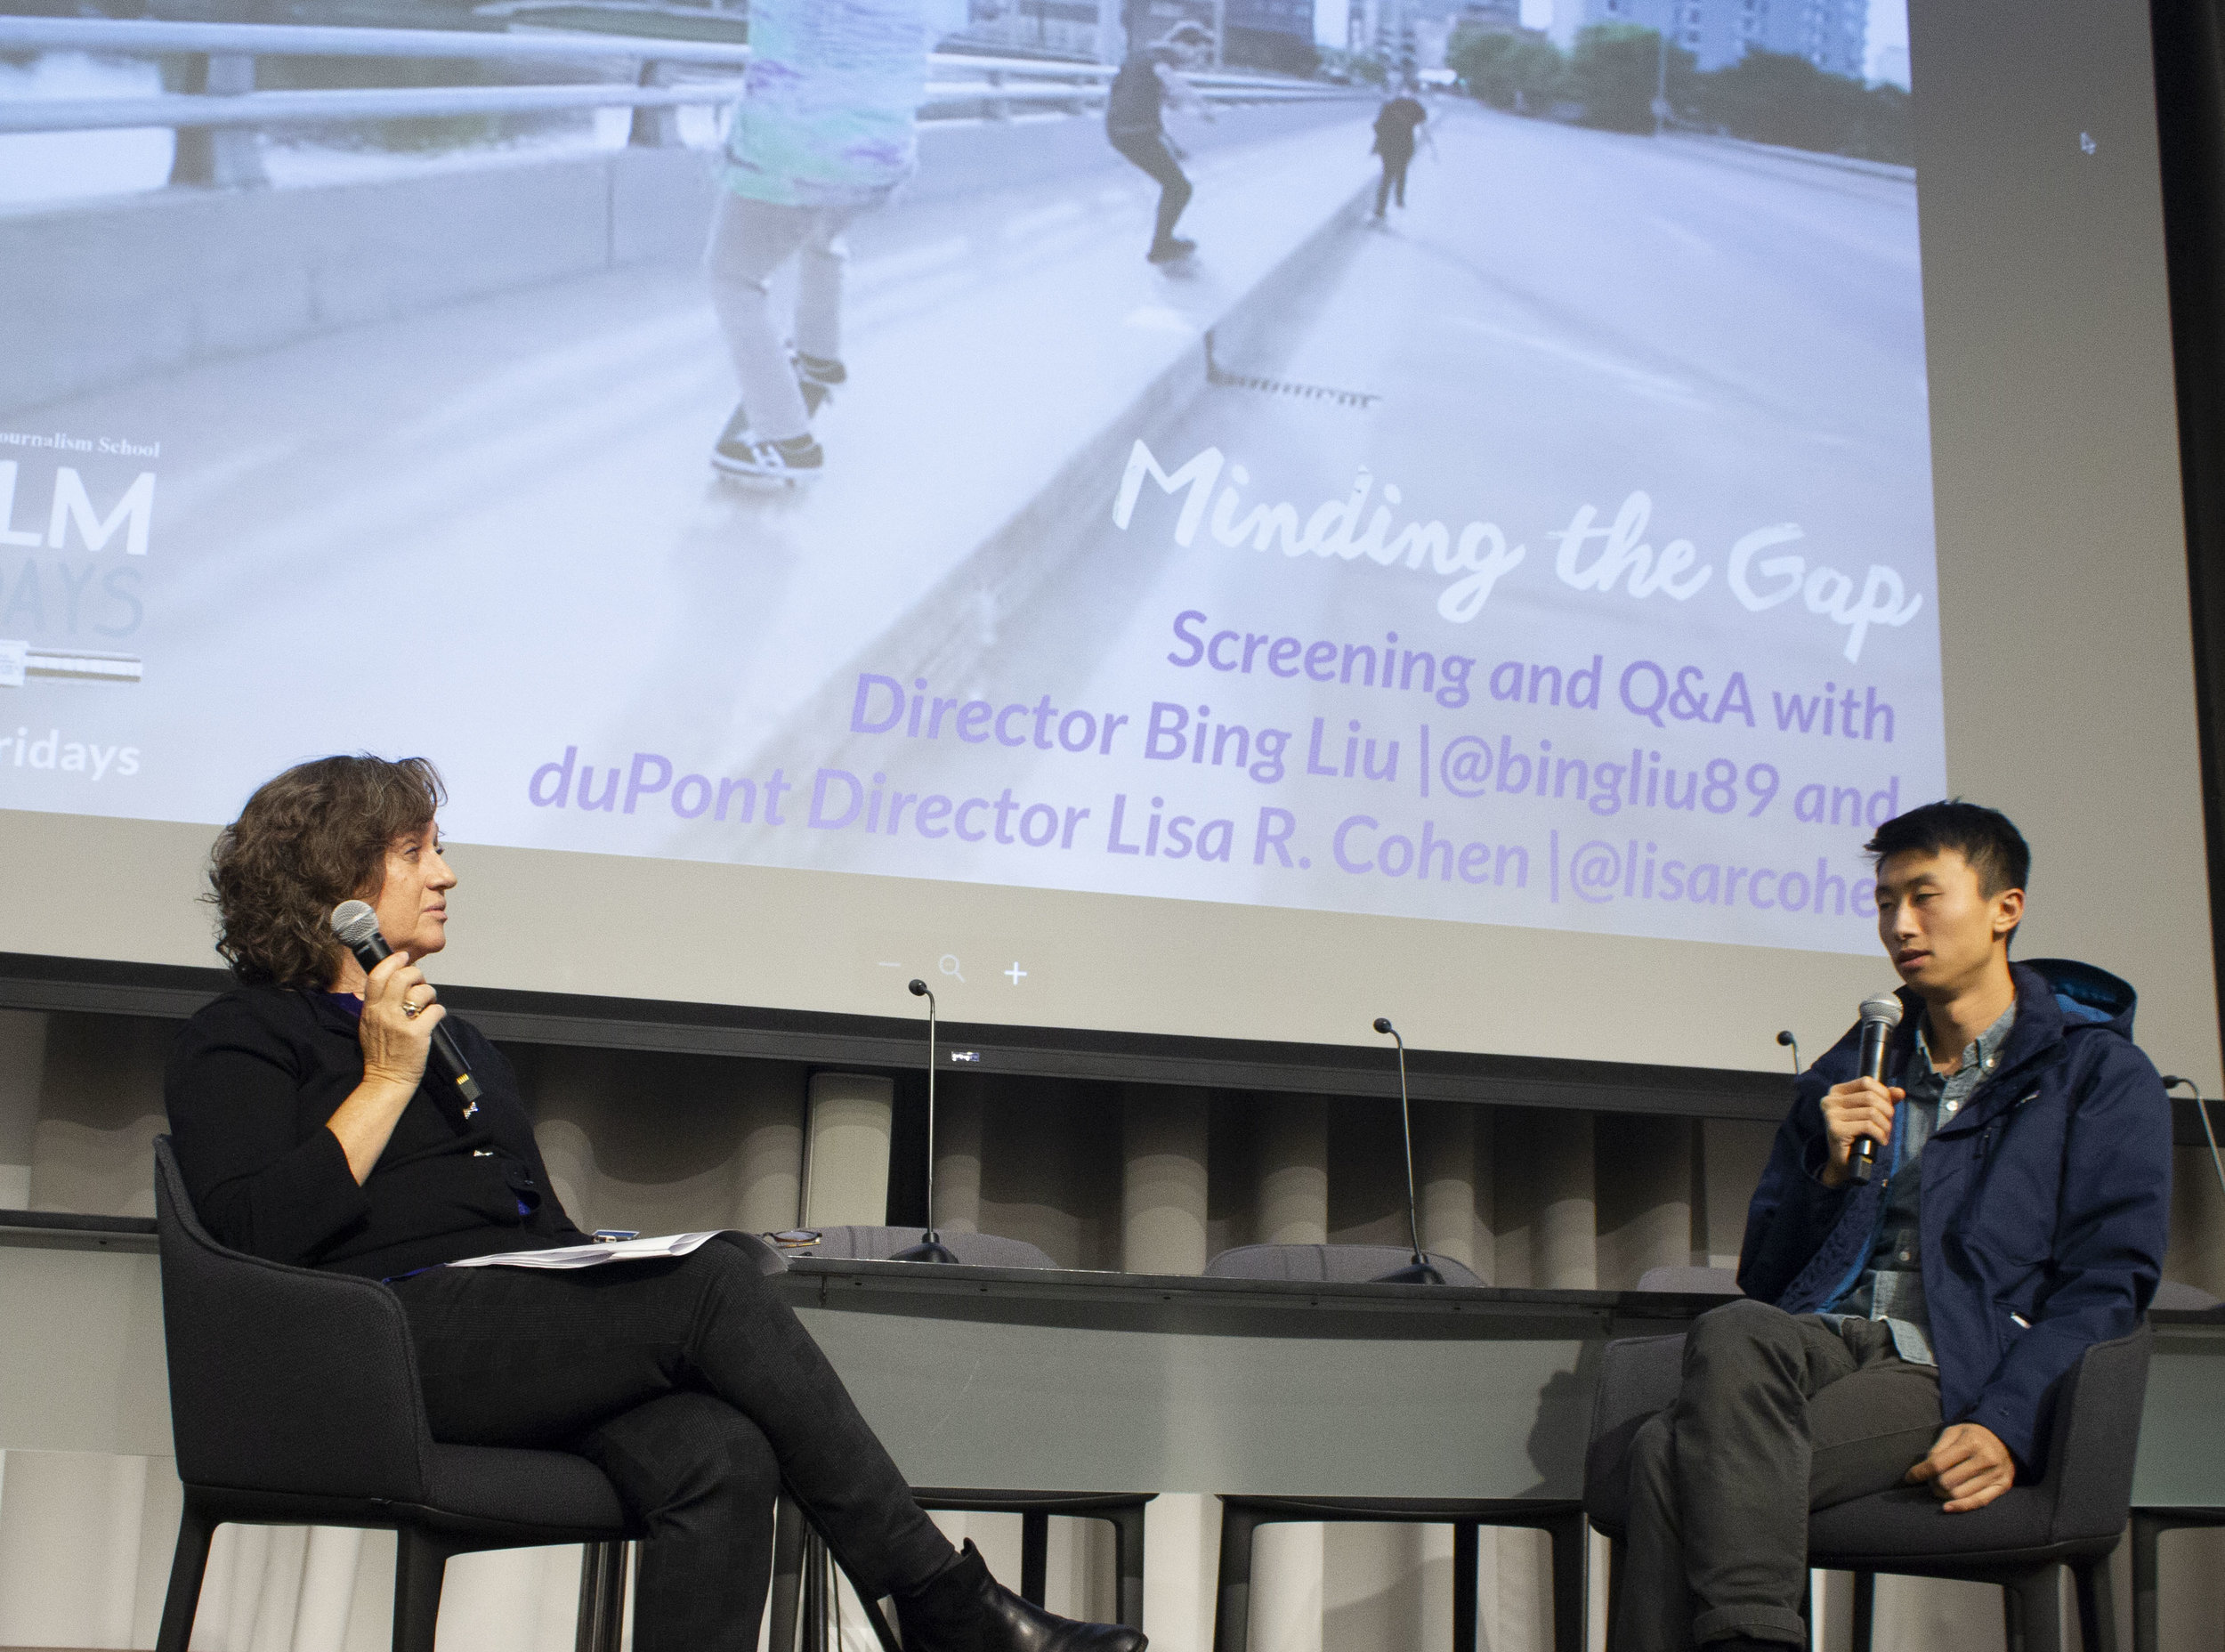 """Director Bing Liu in a Q&A with duPont Awards Director Lisa R. Cohen at the Columbia Journalism School post screening his Oscar-nominated film: """"Minding the Gap."""""""